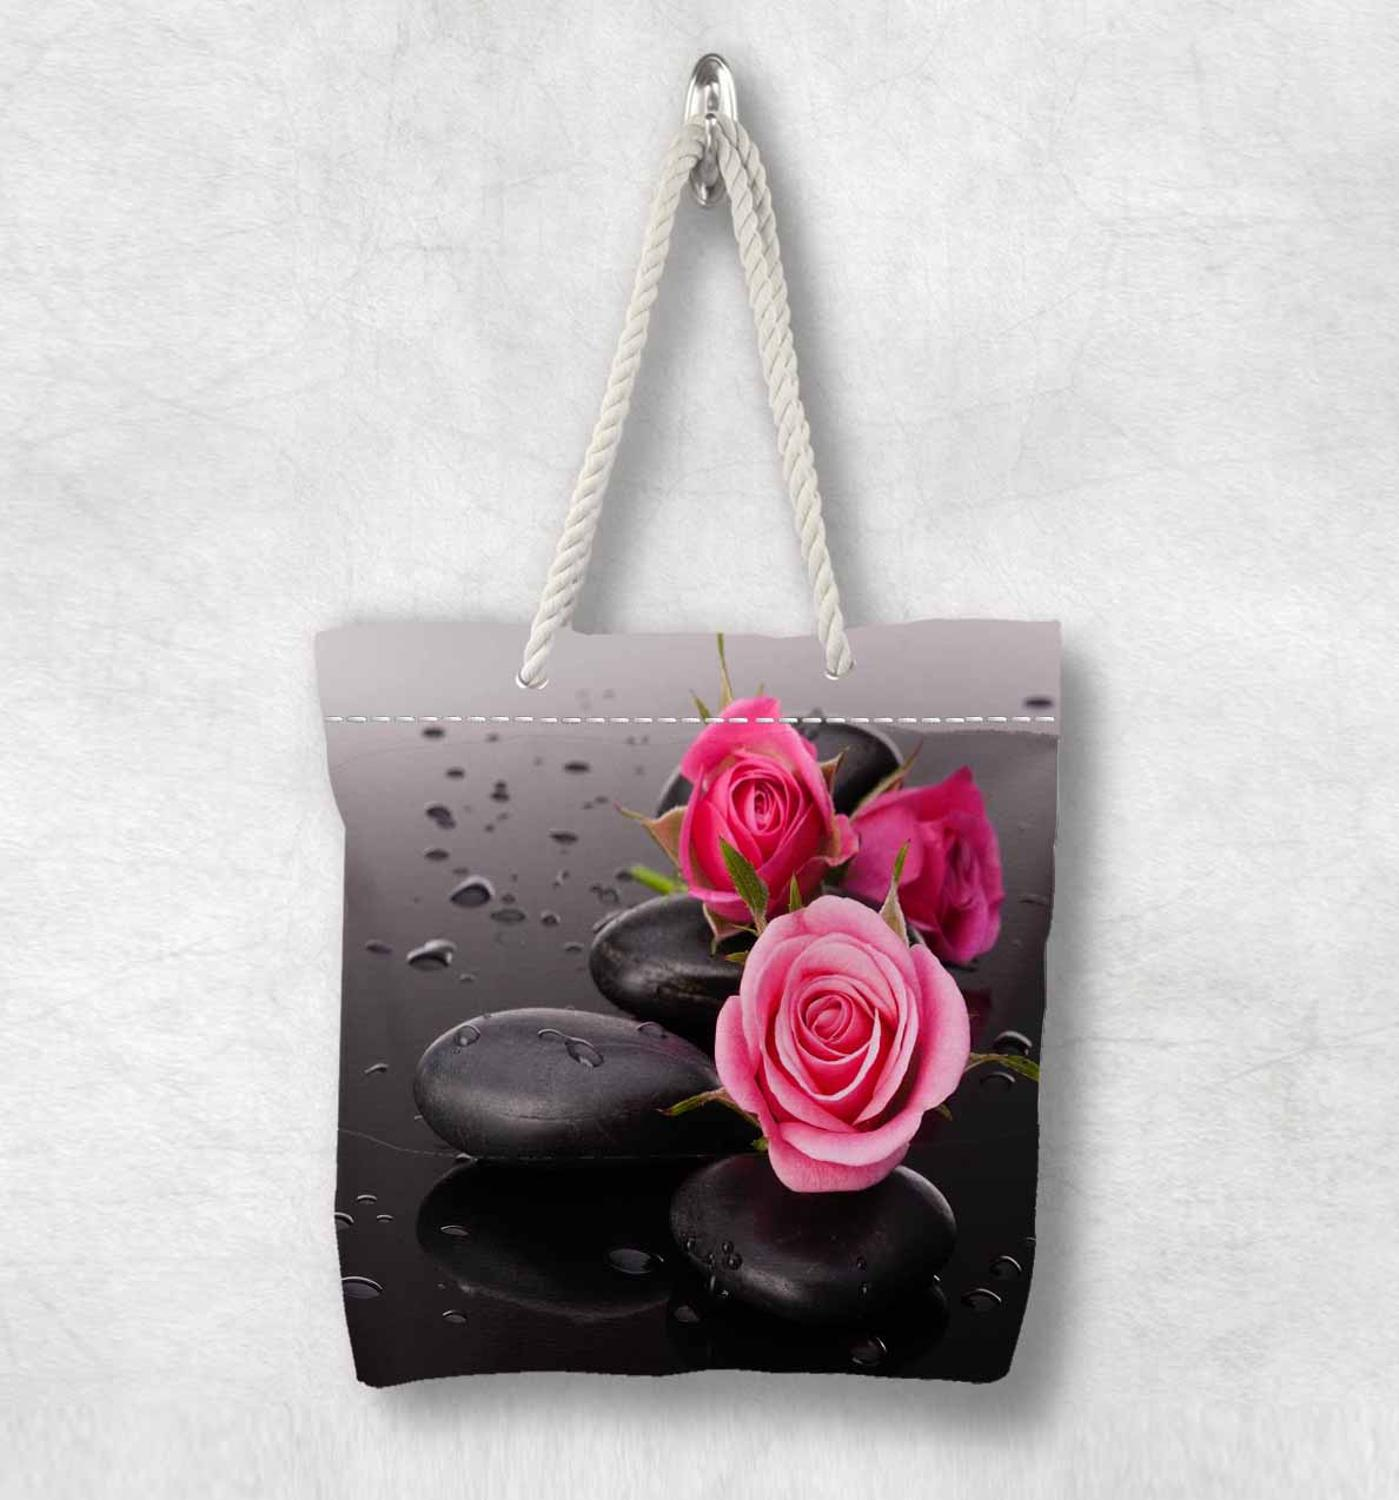 Else Pink Roses Black Spa Stones Flowers New Fashion White Rope Handle Canvas Bag Cotton Canvas Zippered Tote Bag Shoulder Bag